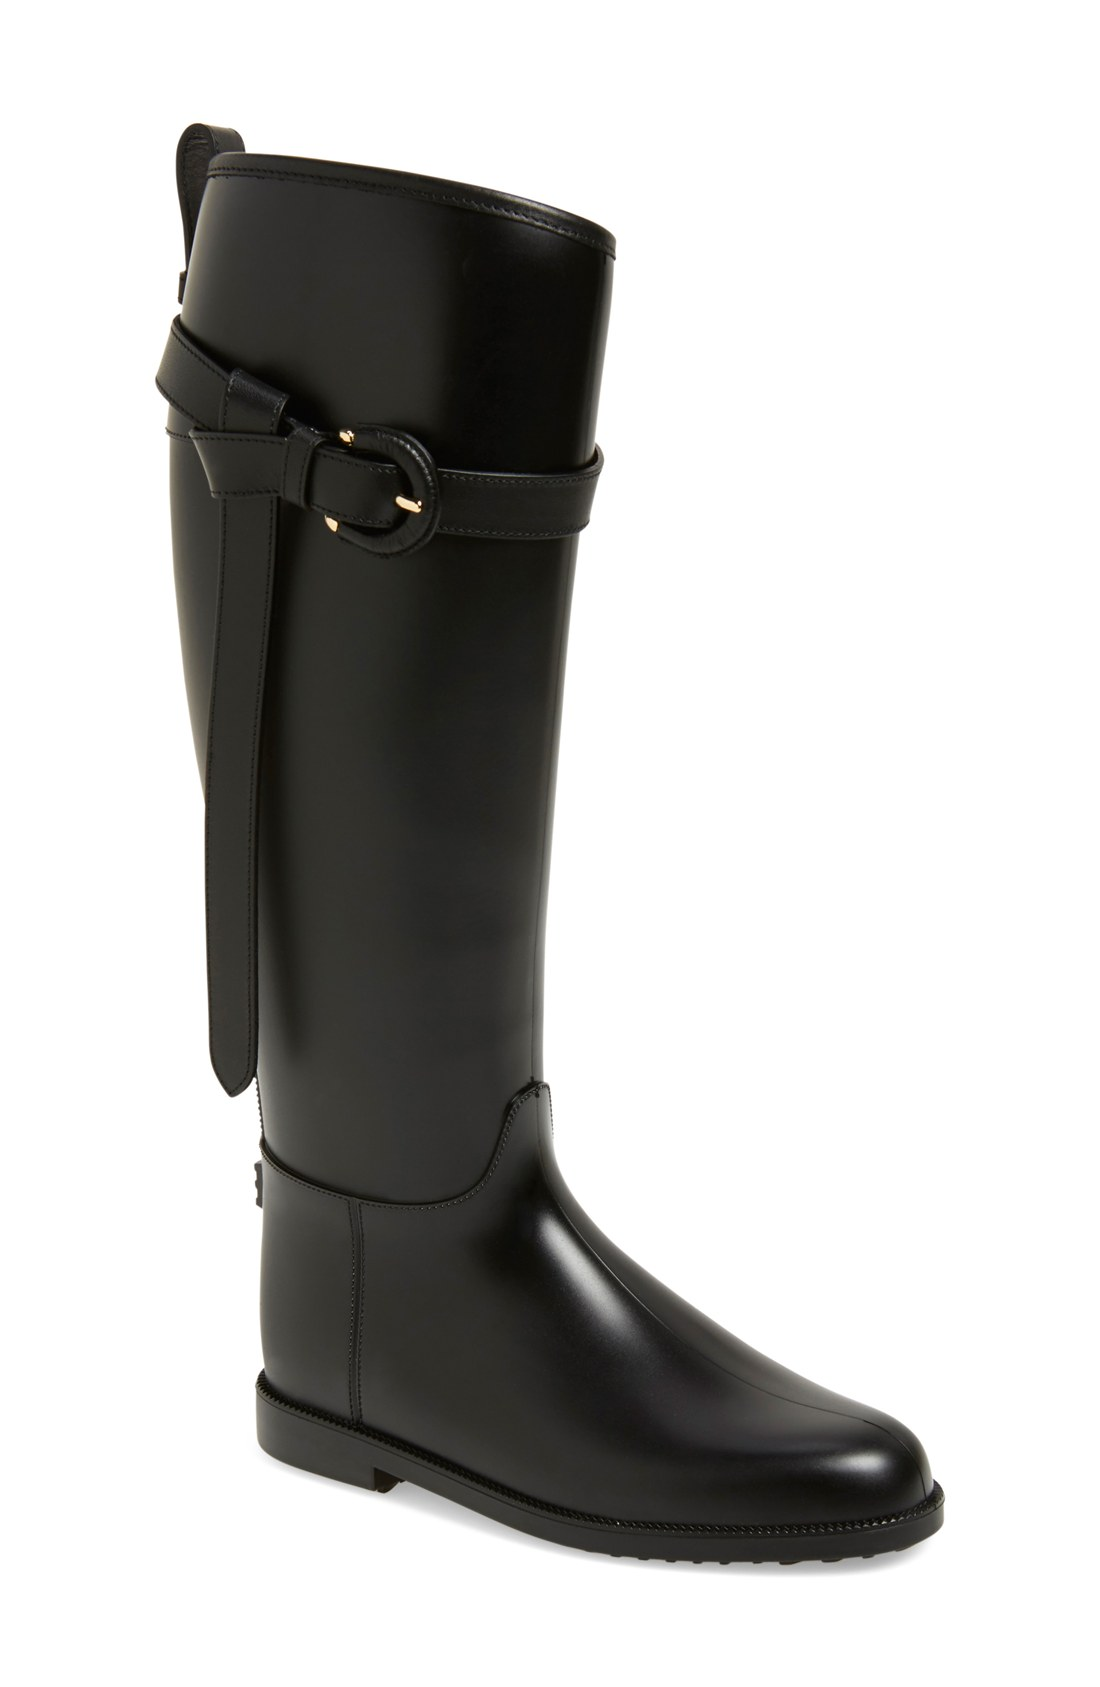 Leather Riding Boots For Women bFWzpT7w